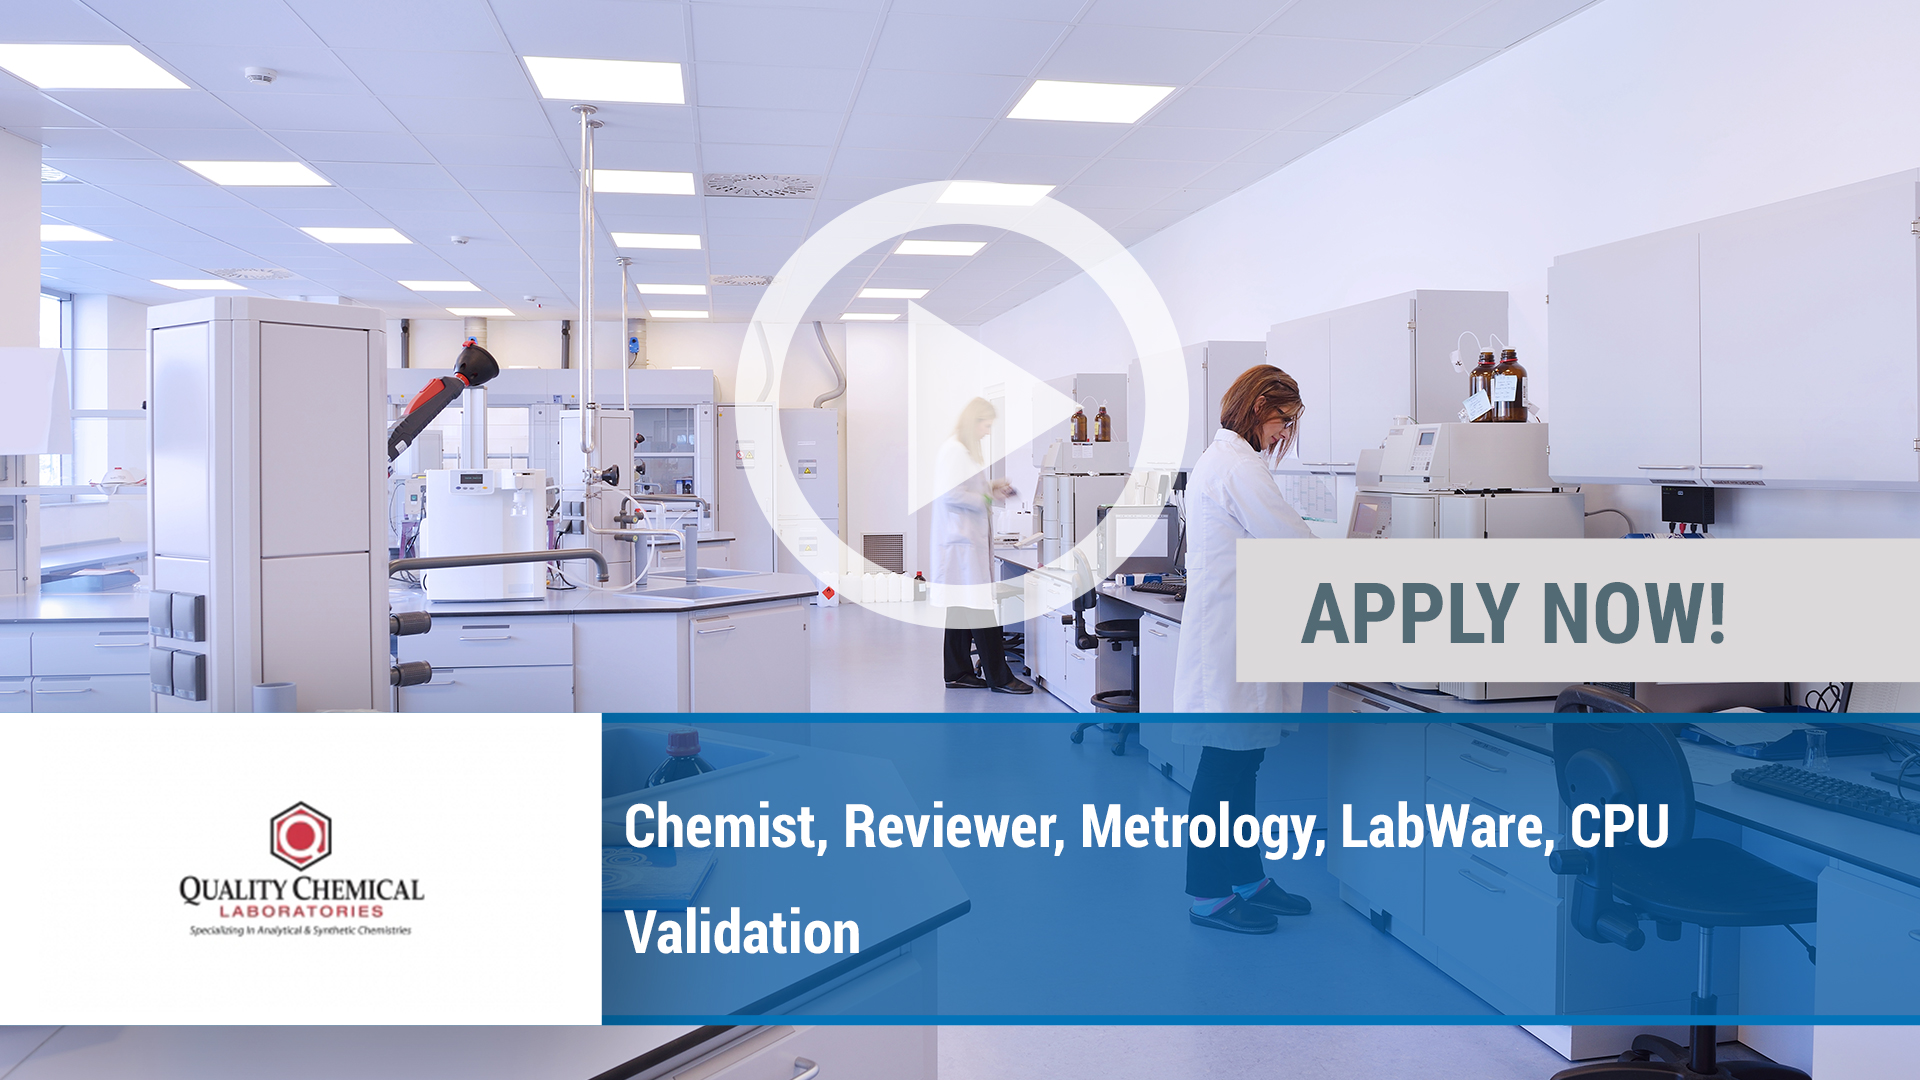 Watch our careers video for available job opening Chemist, Reviewer, Metrology, LabWare, CPU Valida in Wilmington, NC